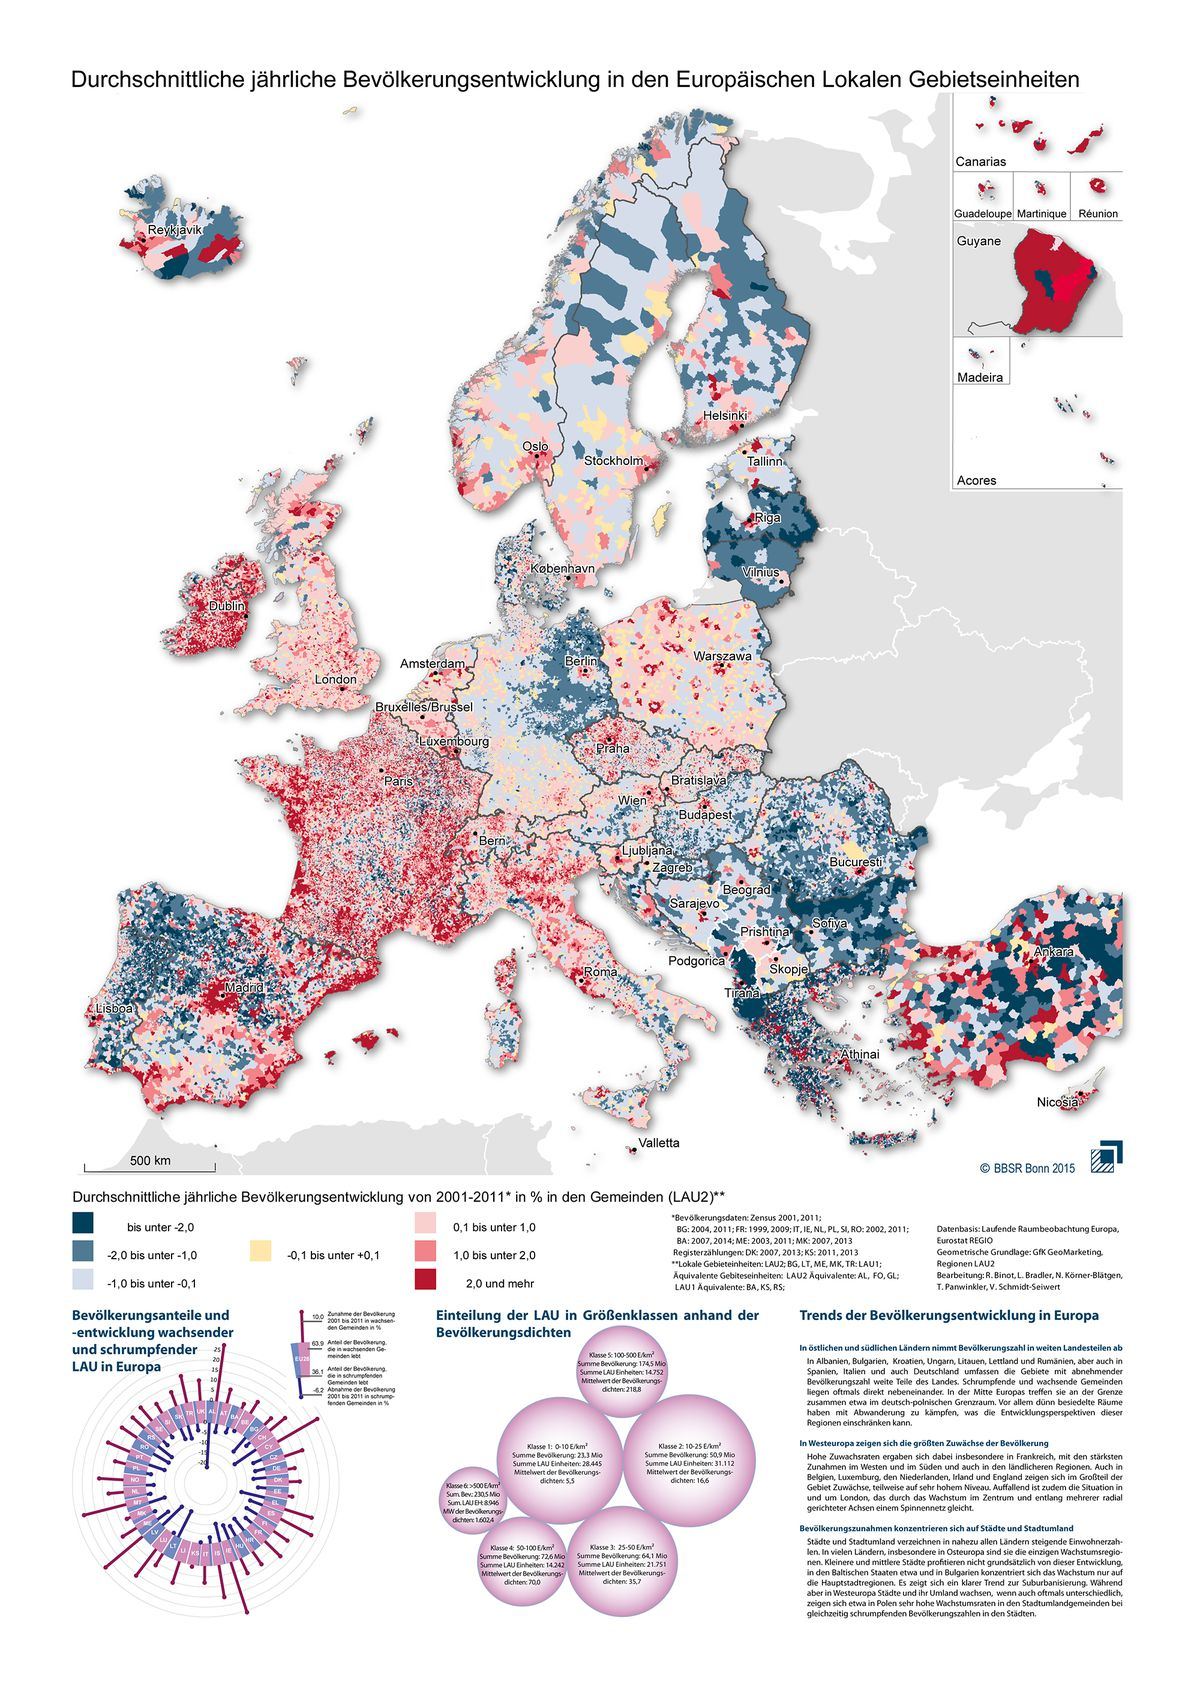 BSSR Map of population shifts in European countries, 2001-2011.